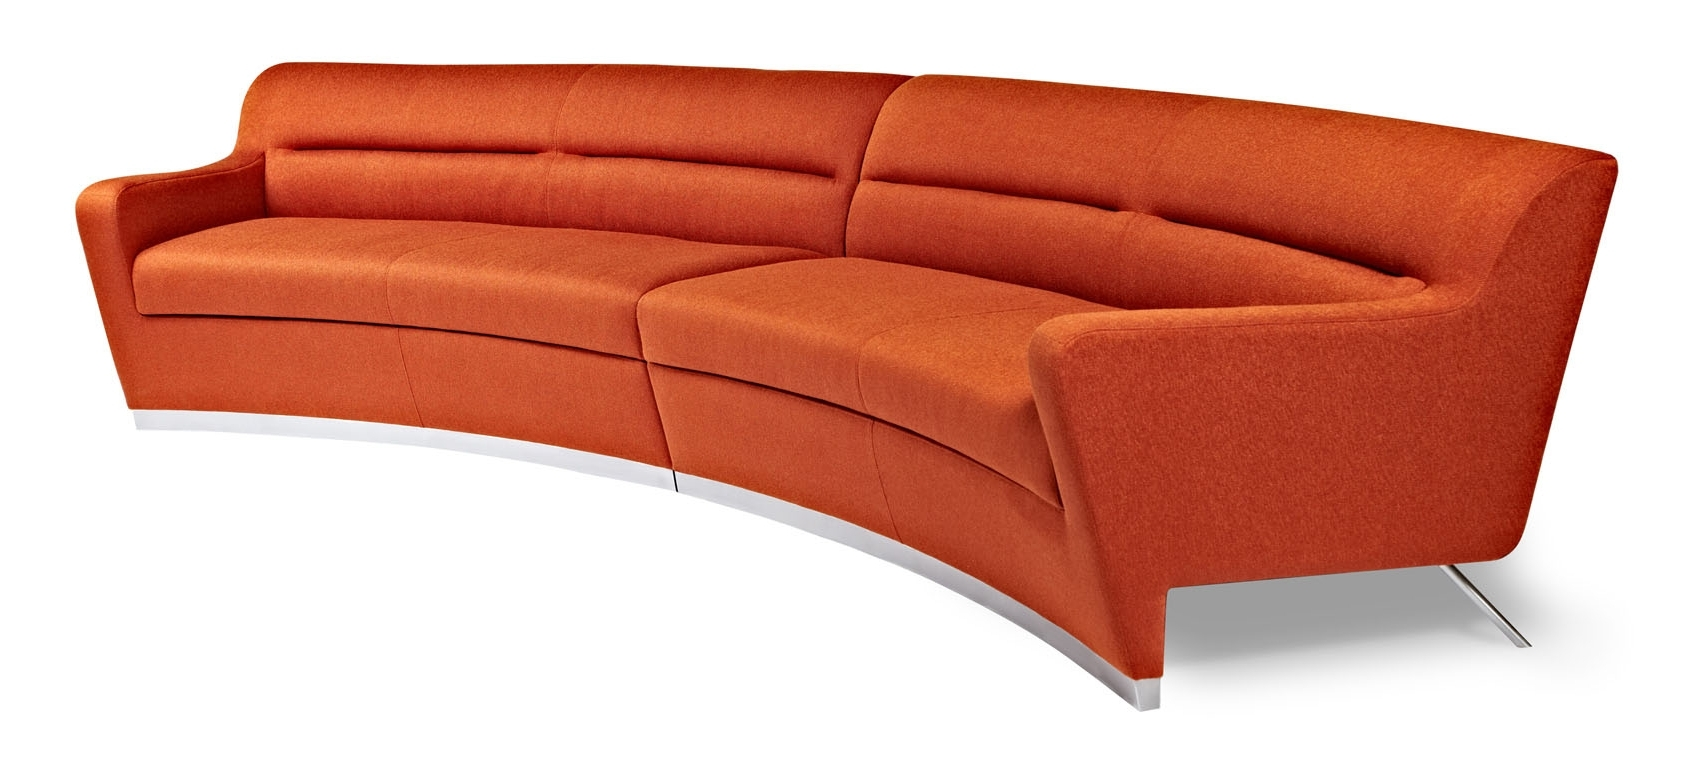 Well Known Niagara Sectional Sofas With American Leather Niagara Sectional Sofa (View 4 of 15)